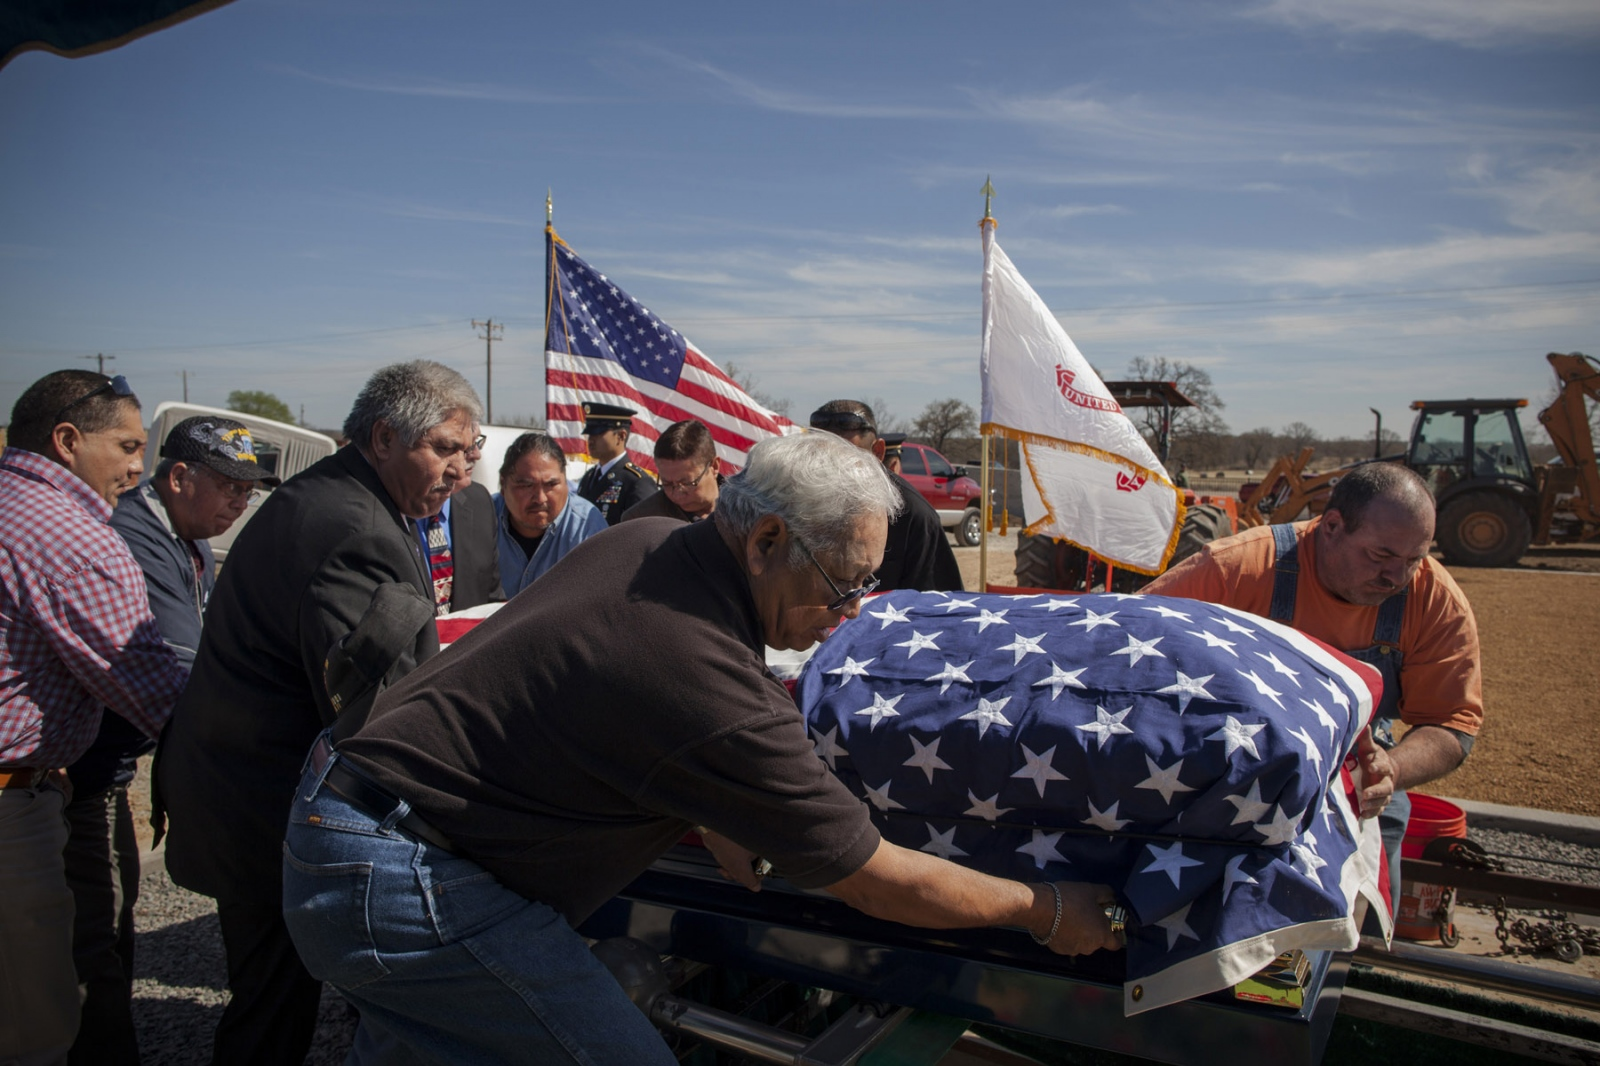 Friends and relatives carry the casket containing the body of Edmond A. Harjo during funeral services on Friday, April 4, 2014 in Seminole, Oklahoma. Mr. Harjo was a Seminole Code Talker who served in Europe during World War II as a Private First Class and returned to the US after active duty in 1944 and remained in Maud, a nearby town, until his death at 96 on Monday, March 31, 2014. He was awarded the Congressional Gold Medal in 2013 for his efforts in using his language during the war. He was buried in the new veterans memorial grounds on the Seminole Nation and was given a small military funeral.